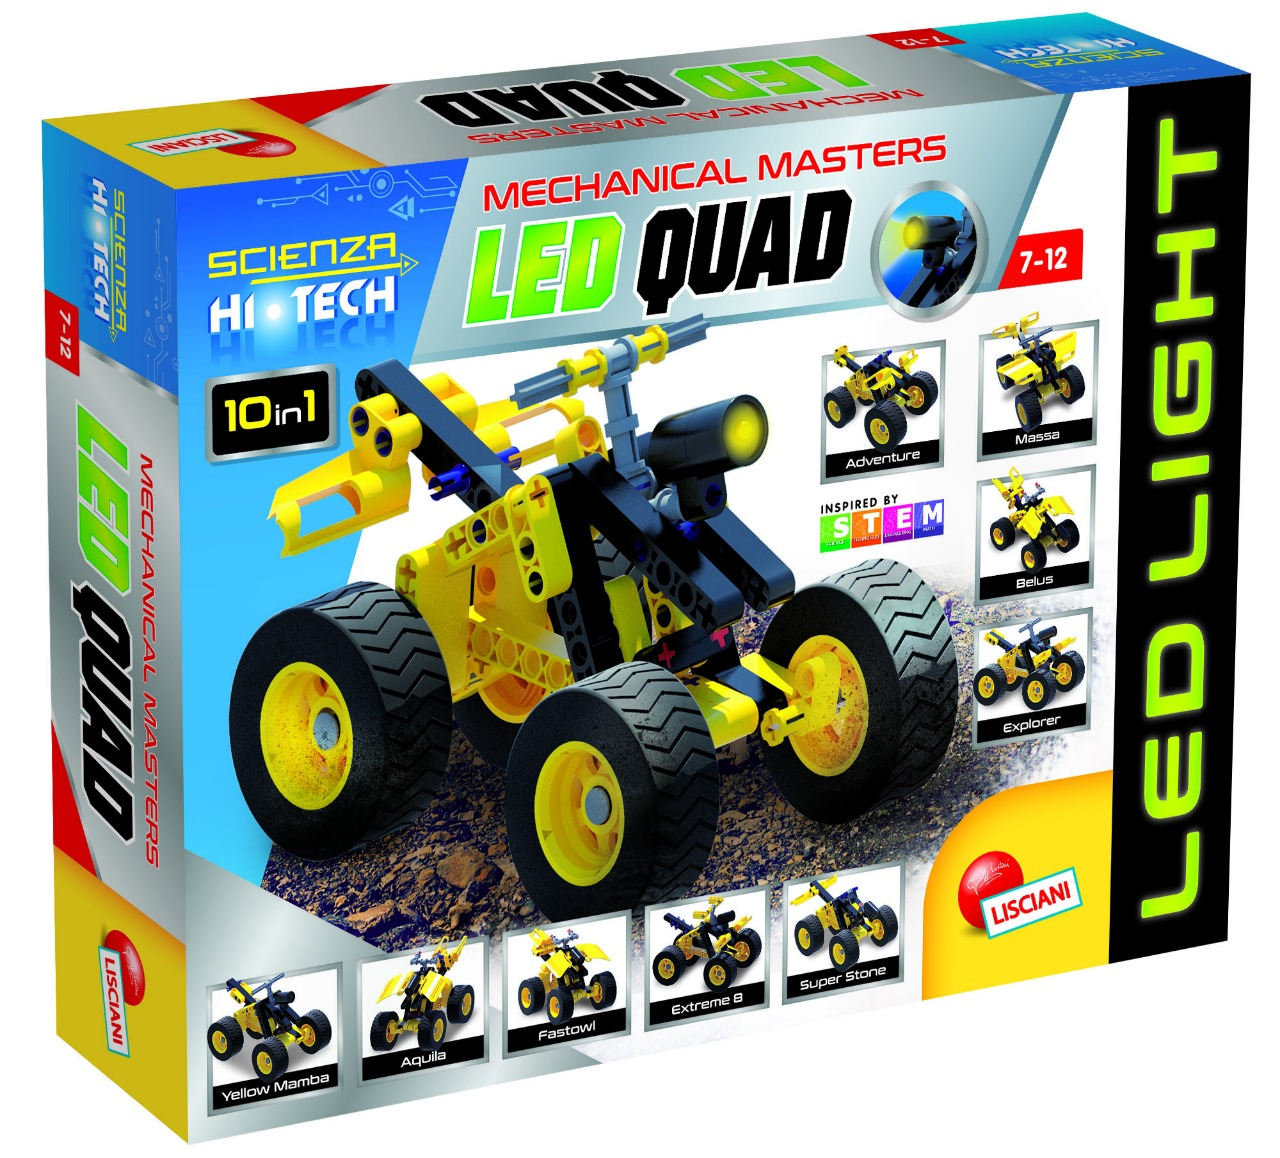 SCIENCE MINI CONSTRUCTIONS WITH LED QUAD SCIENCE TOY